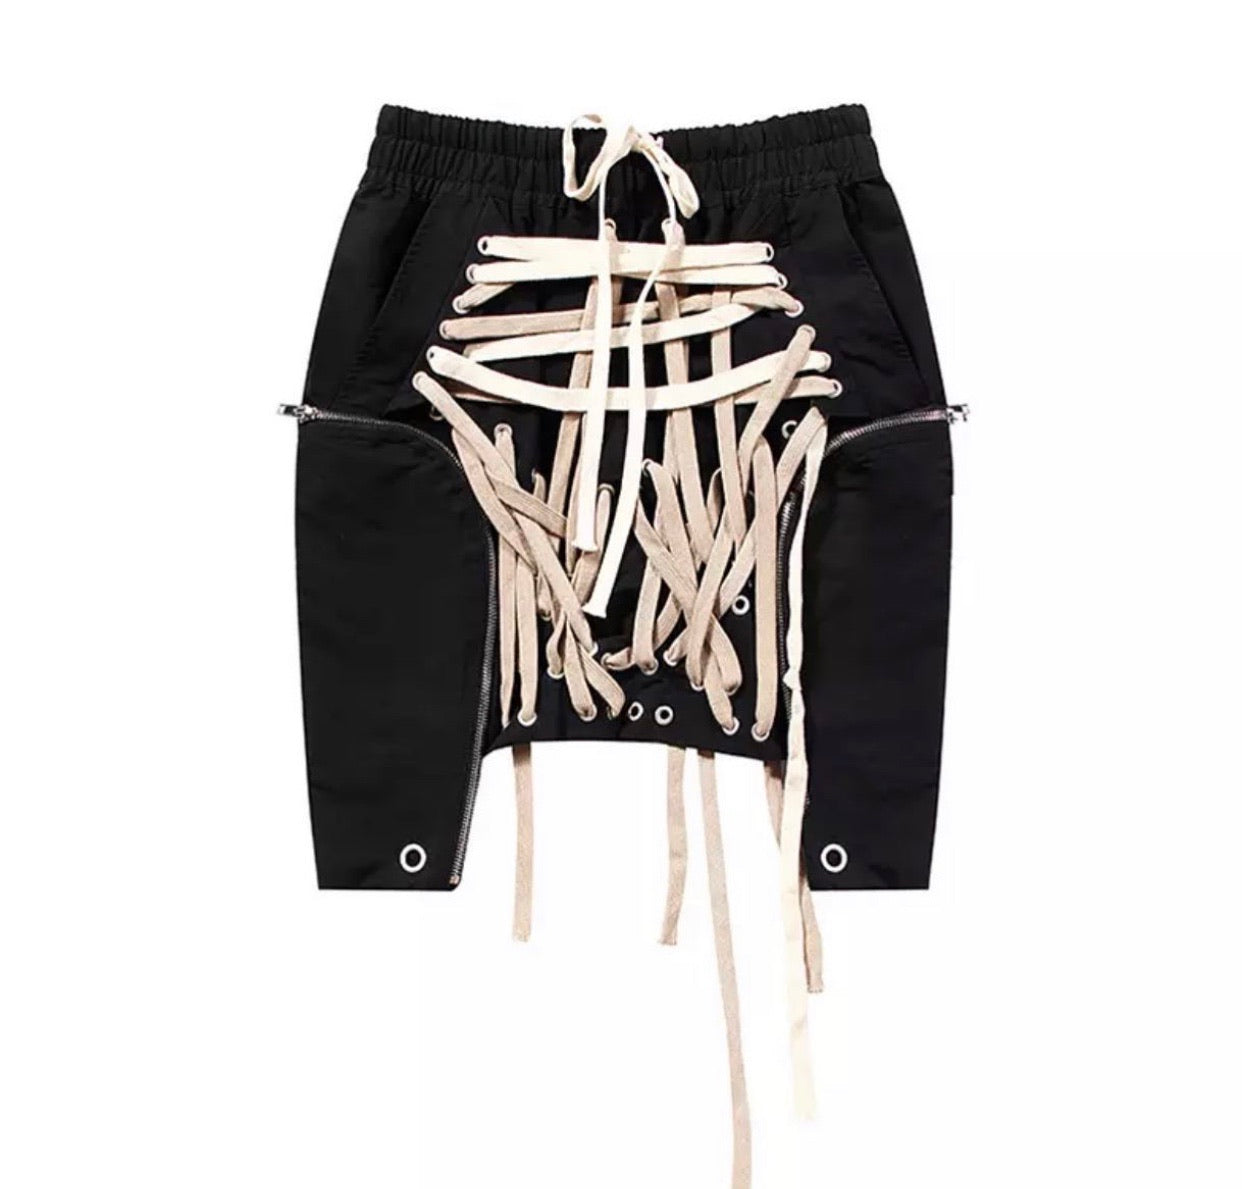 LACED UP Skirt / Bottom